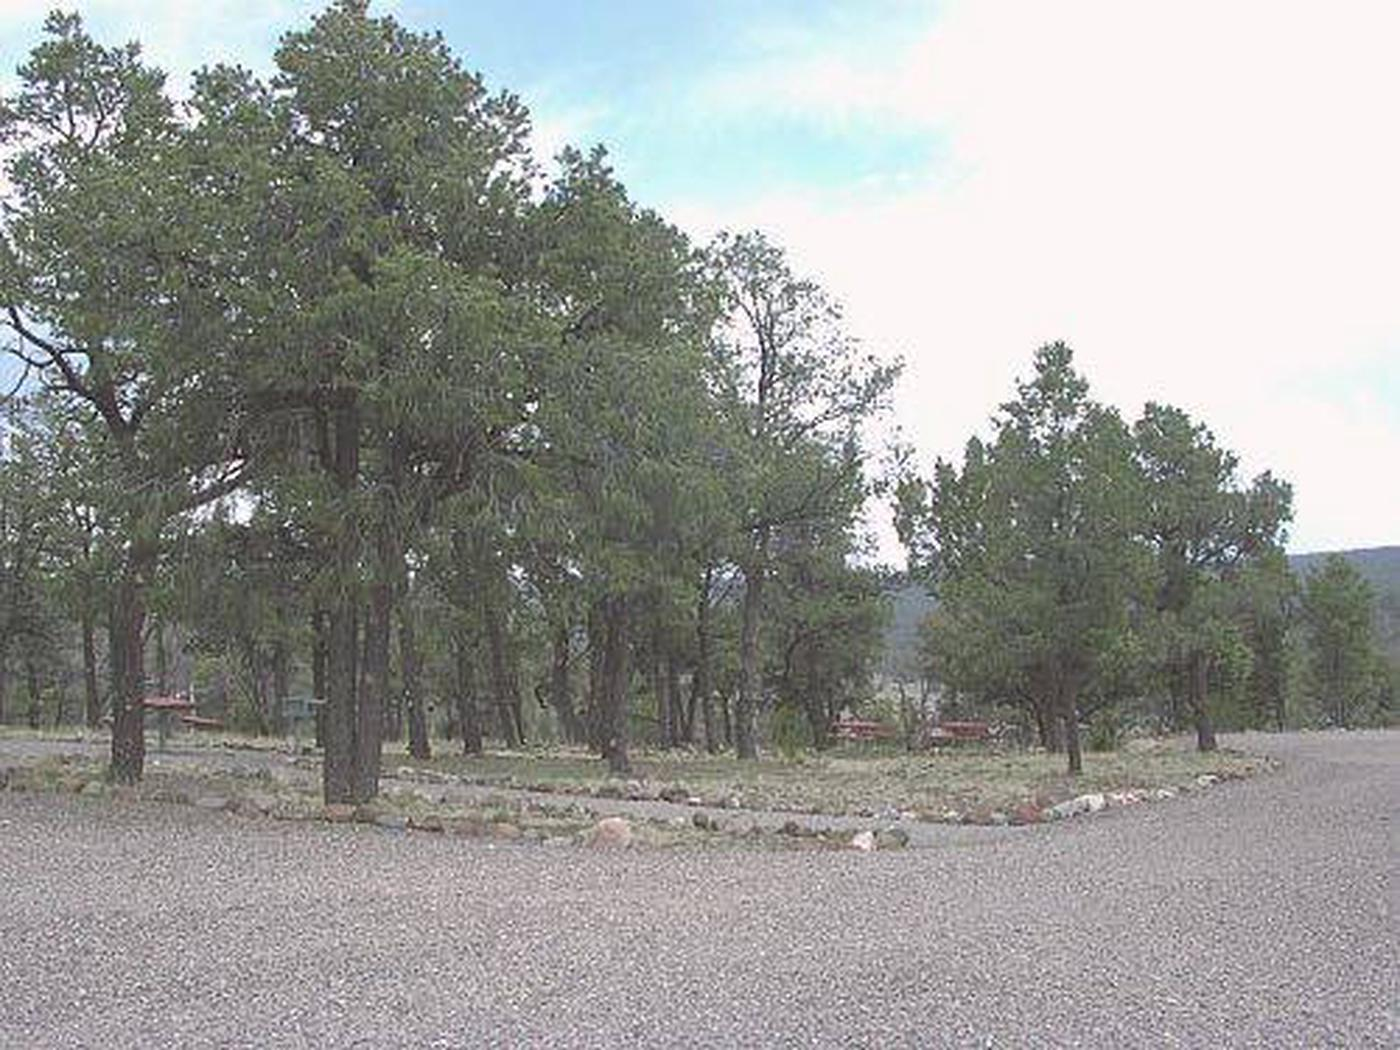 Showing Pinon Campground parking and tall trees